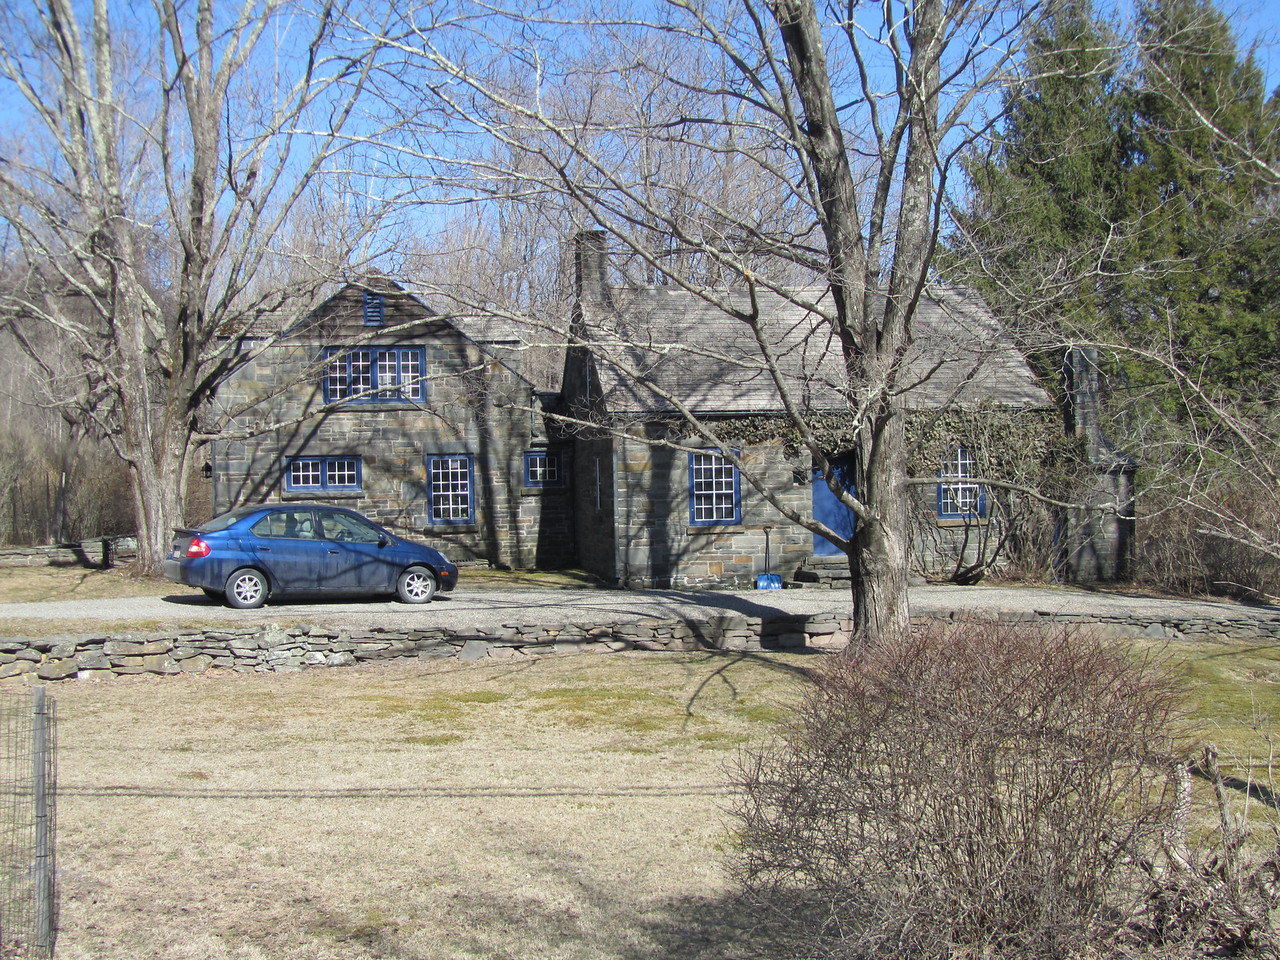 The town of Woodstock has some awesome architecture. A large numbers of old, really old, stone houses. Look at this beauty. I'm sure it is only worth $2MM.